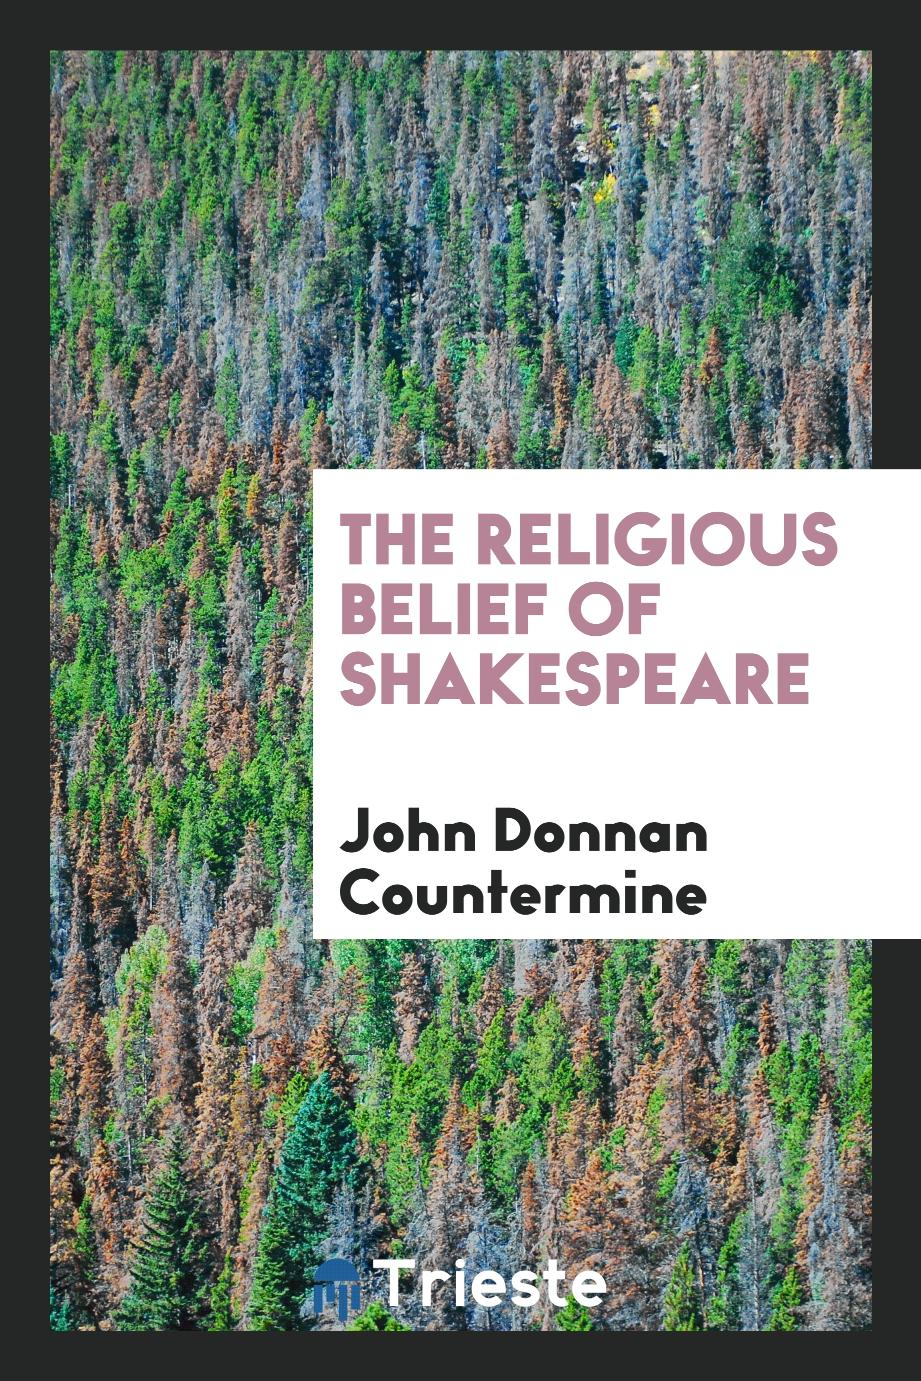 The religious belief of Shakespeare